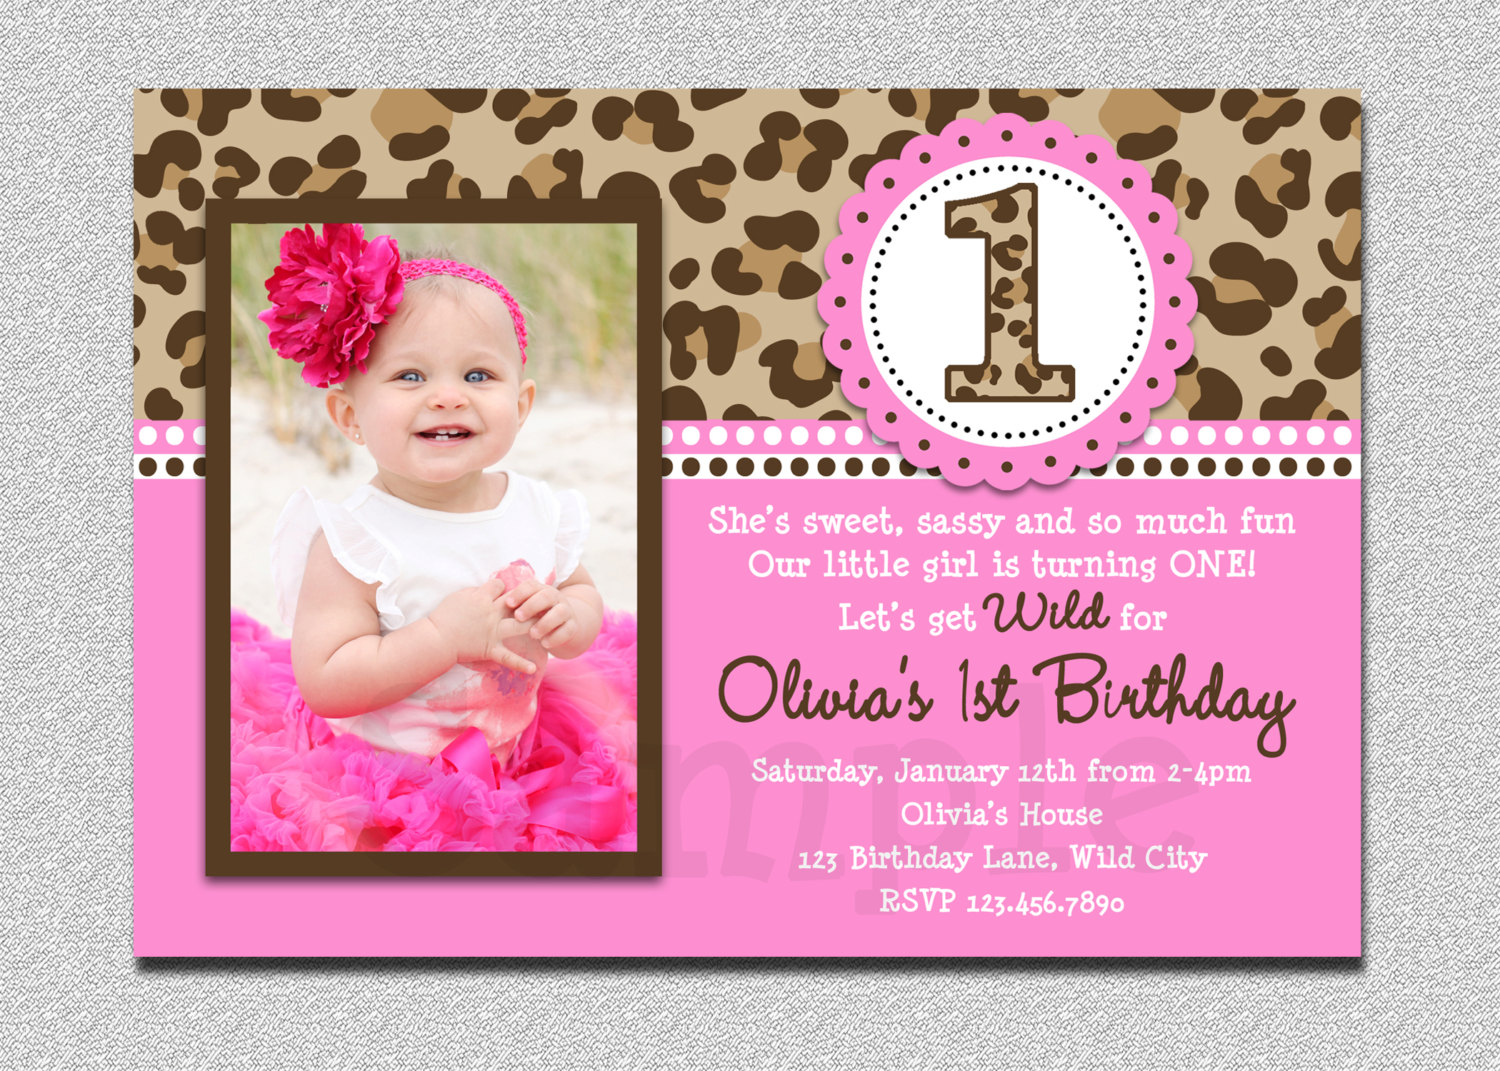 1st birthday party invitation card template free ; Amusing-First-Birthday-Party-Invitations-As-Prepossessing-Ideas-Free-Birthday-Invitations